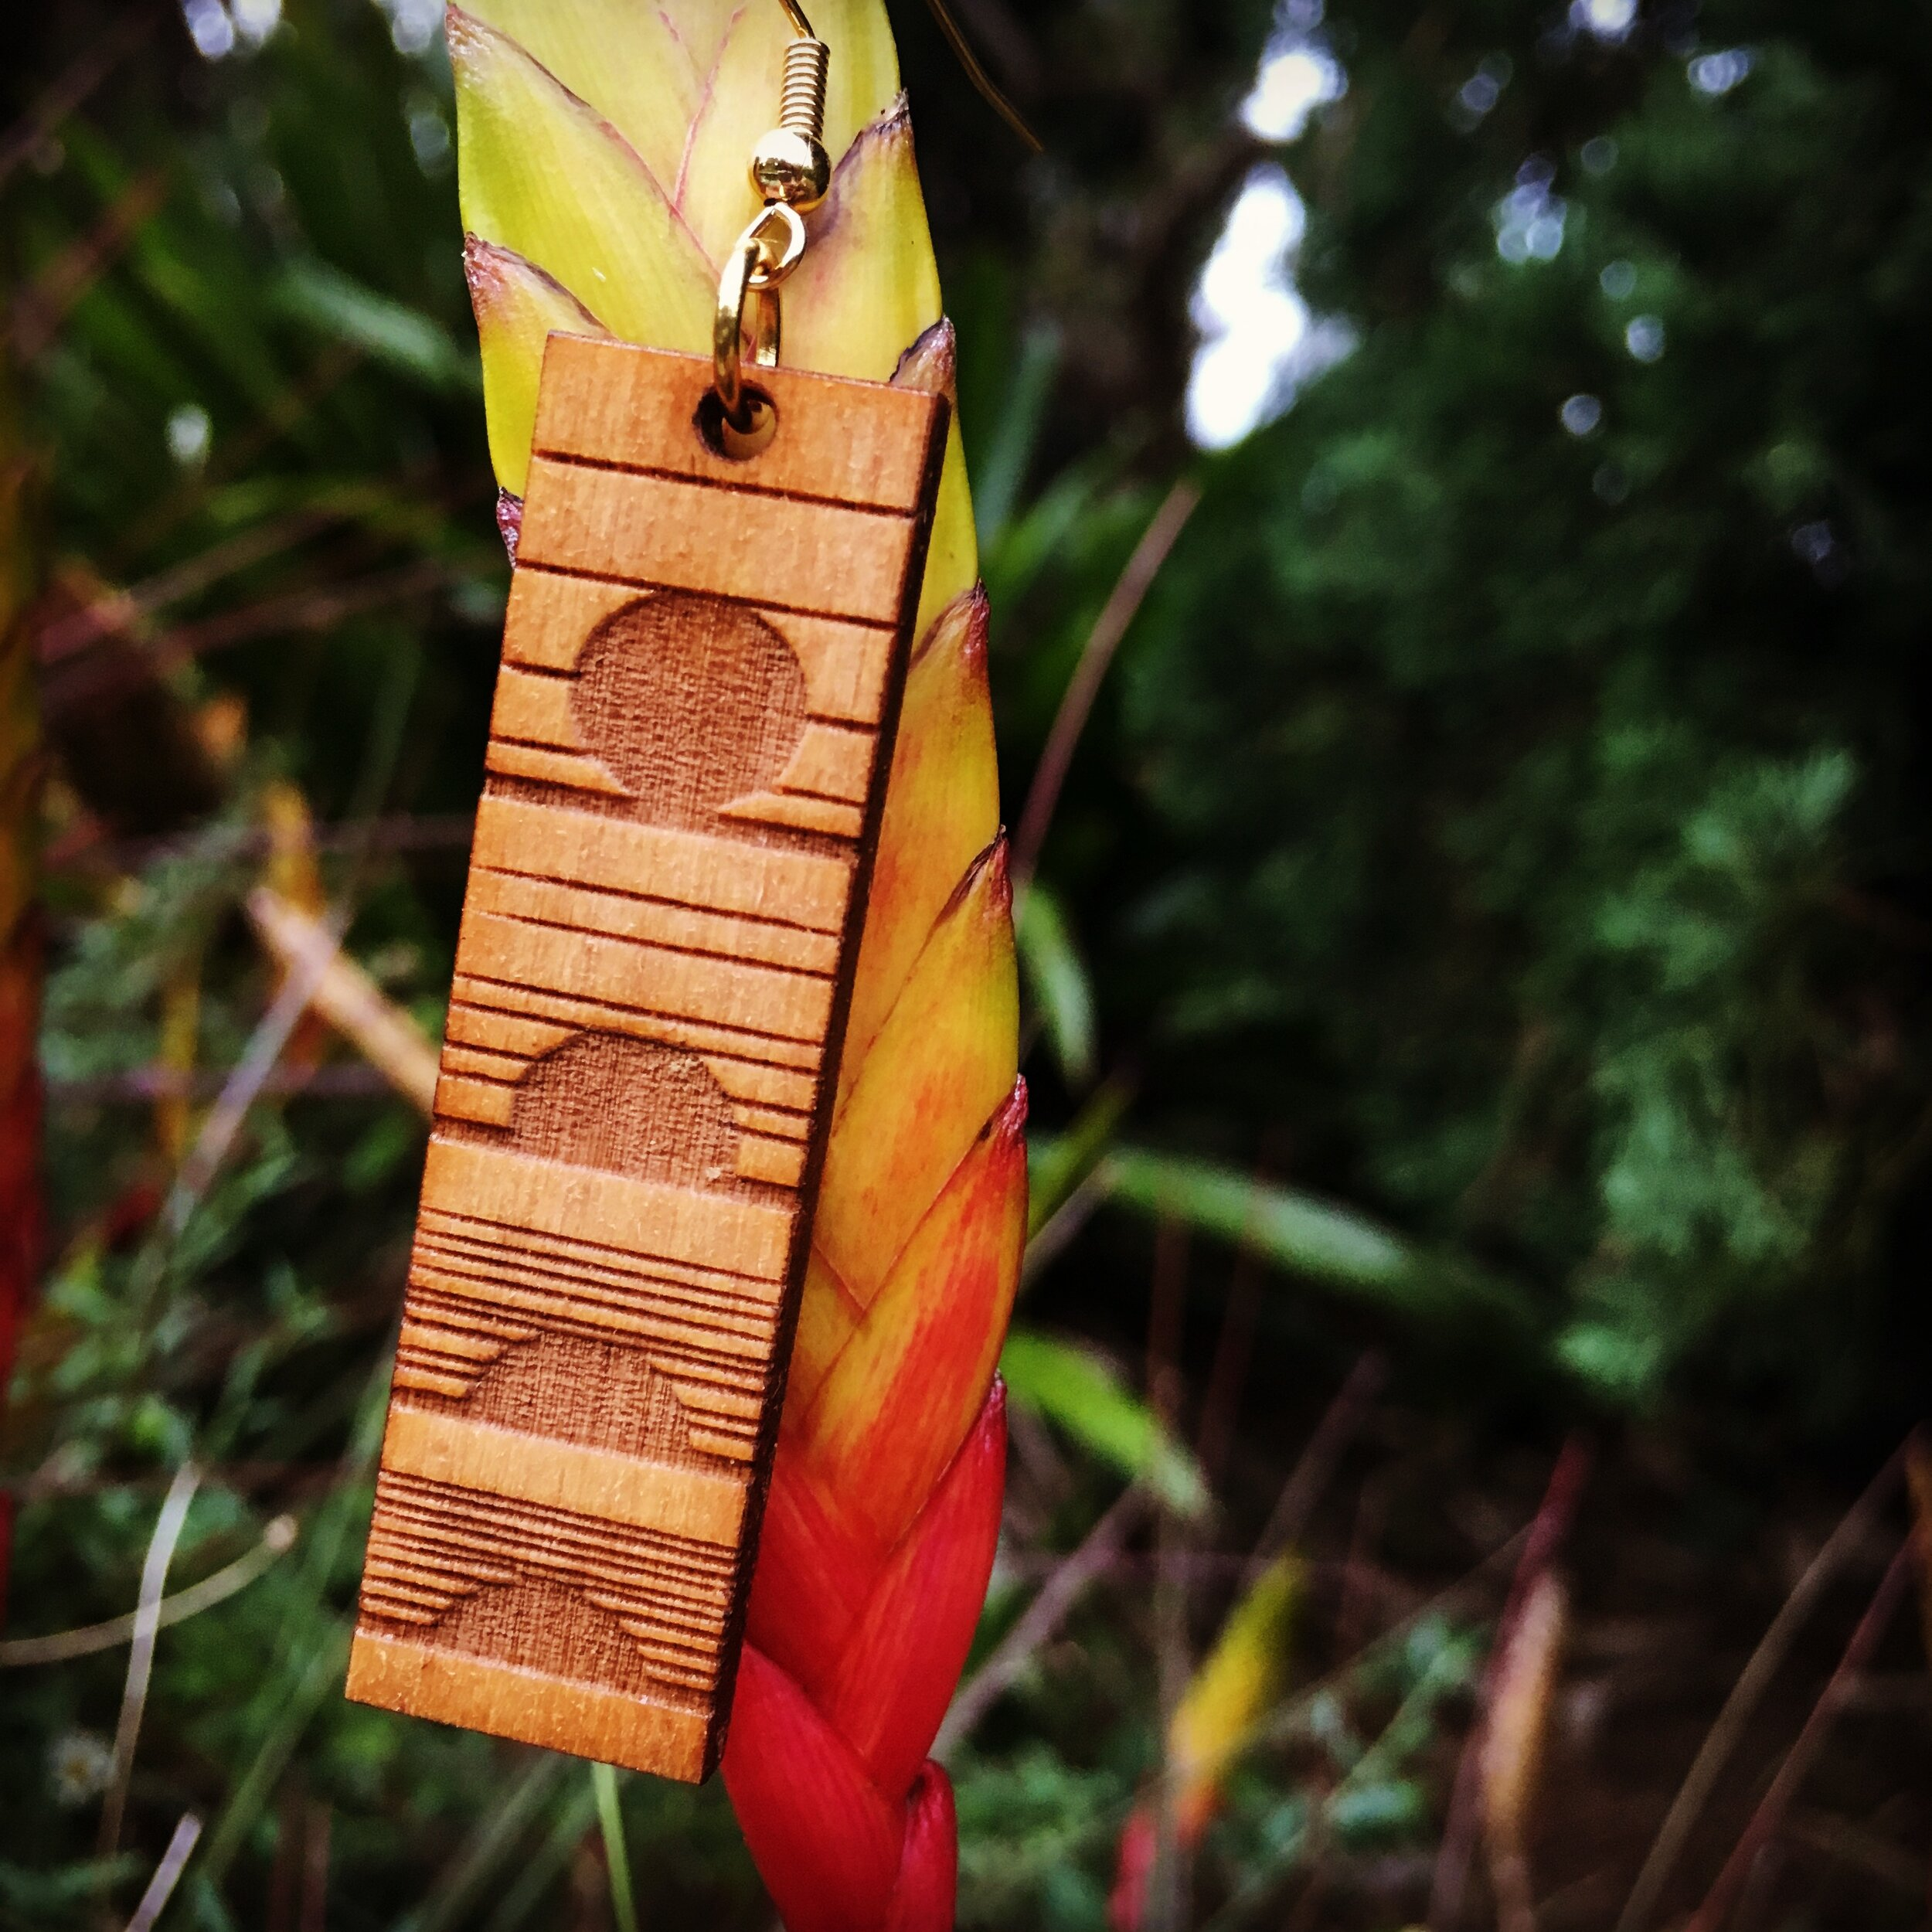 WOOD EARRINGS - LASER CUT WOOD EARRINGS MADE ON MAUI AVAILABLE NOW IN THE WOODSHOP